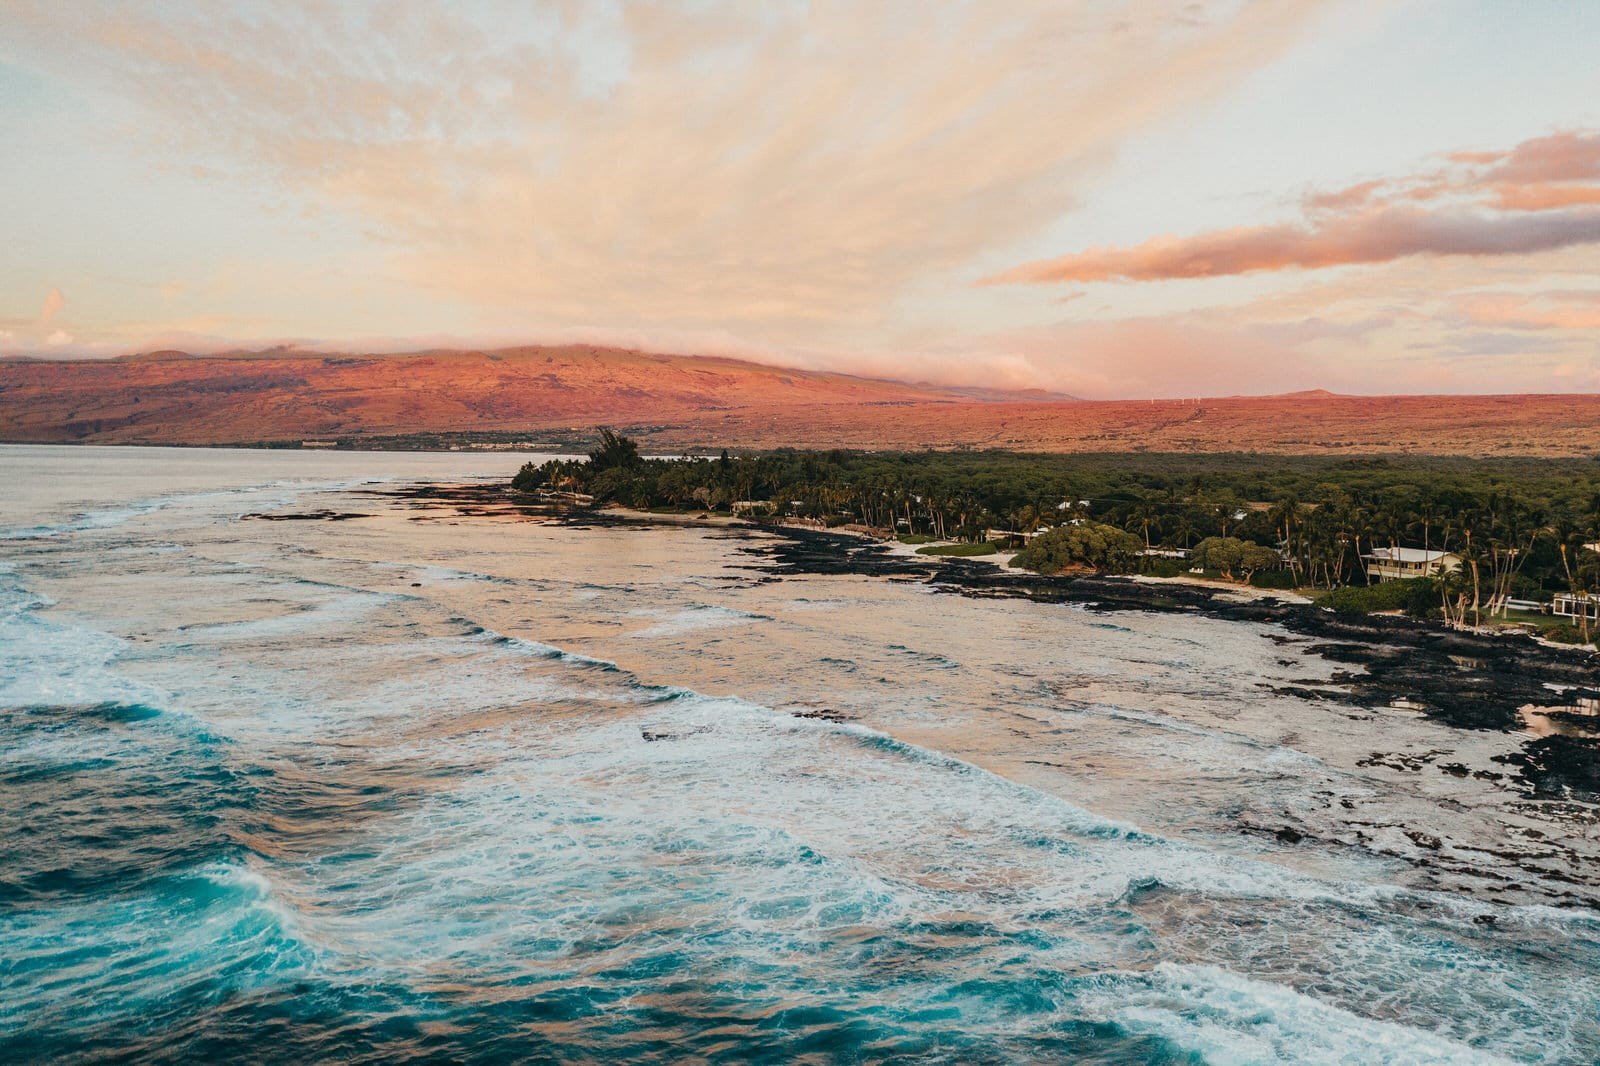 hawaii-drone-photography-professional-big-island-1.jpg